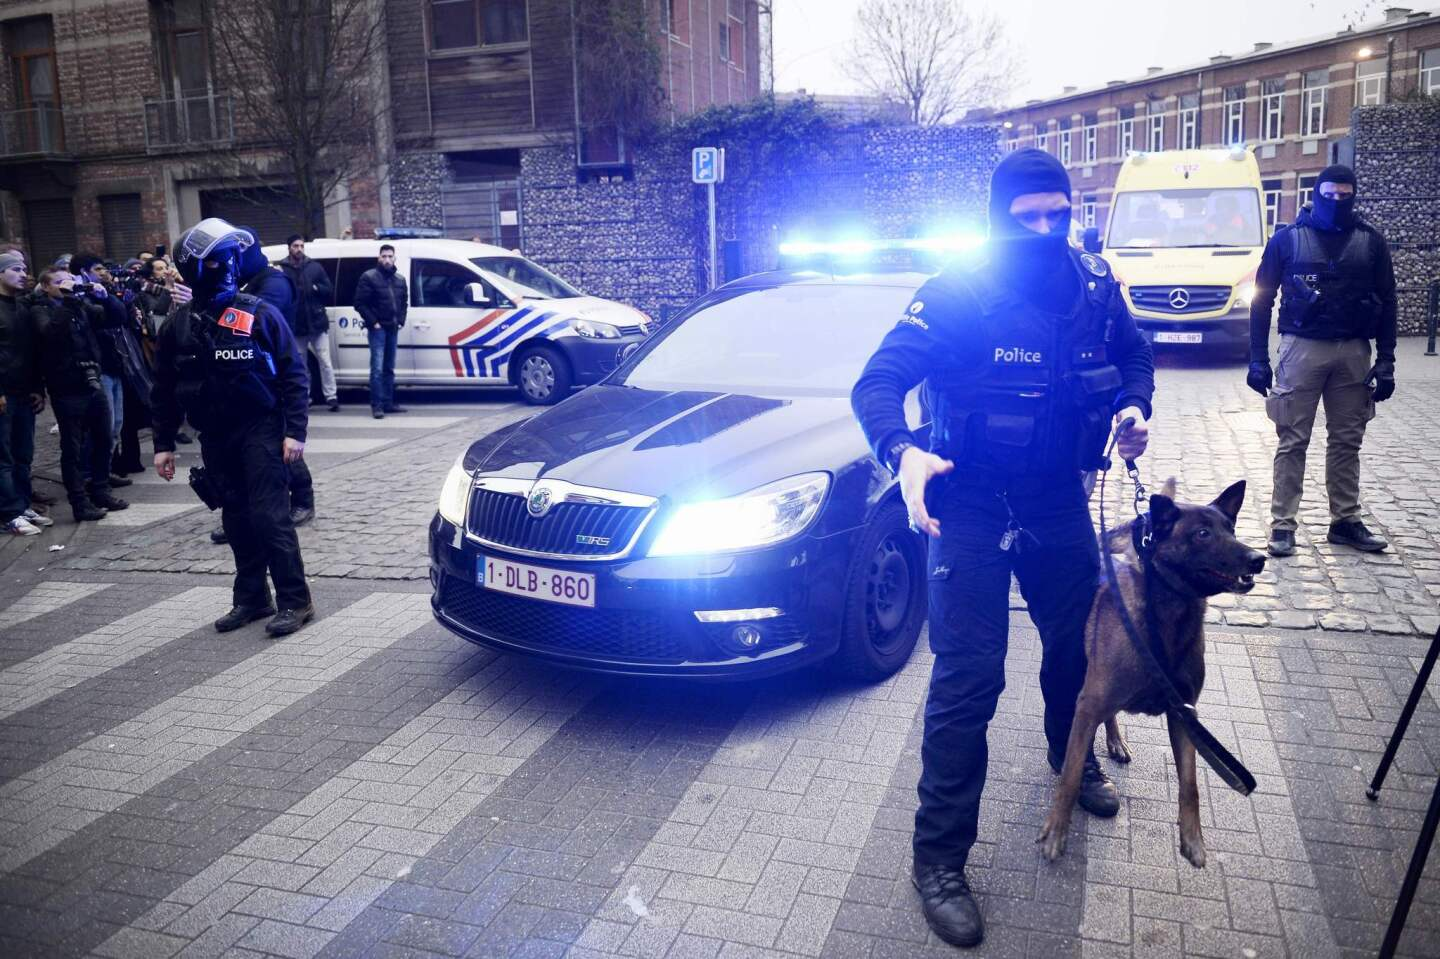 Policemen block a road near the scene of a police raid in the Molenbeek-Saint-Jean district in Brussels as part of the investigation into the November attacks in Paris. The main suspect in the jihadist attacks on Paris, Salah Abdeslam, was arrested in the raid.